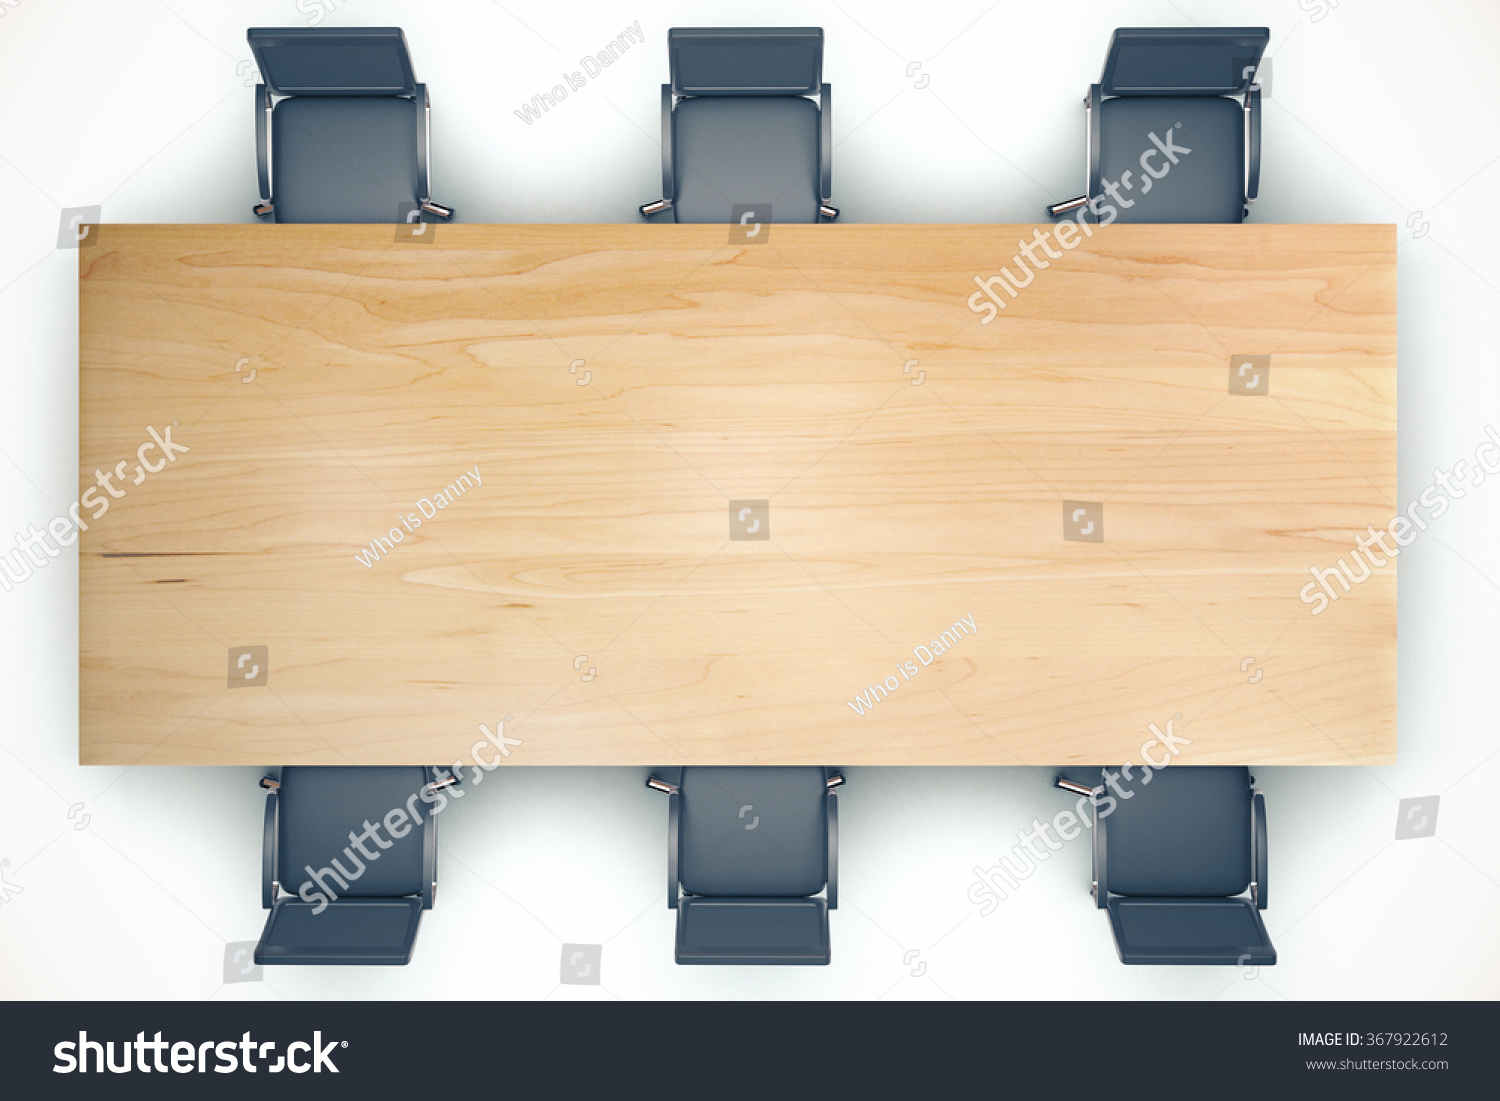 desk chair plan view accent for bedroom top on conference wooden table stock photo 367922612